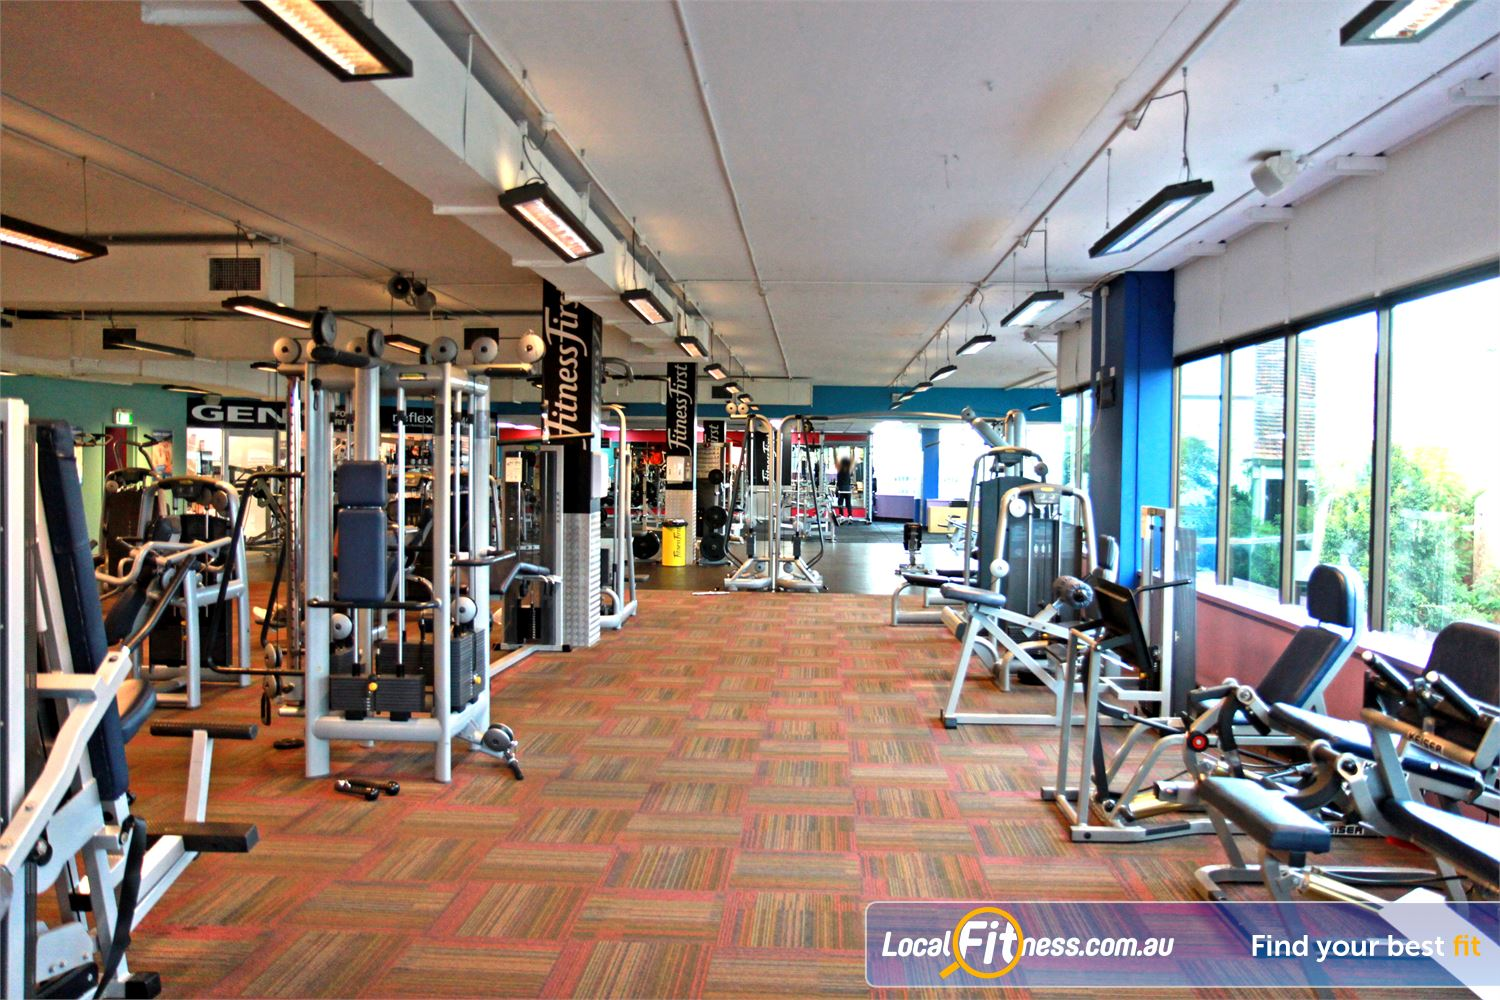 Goodlife Health Clubs Near Wishart Our main Mt Gravatt gym is located on level 2.